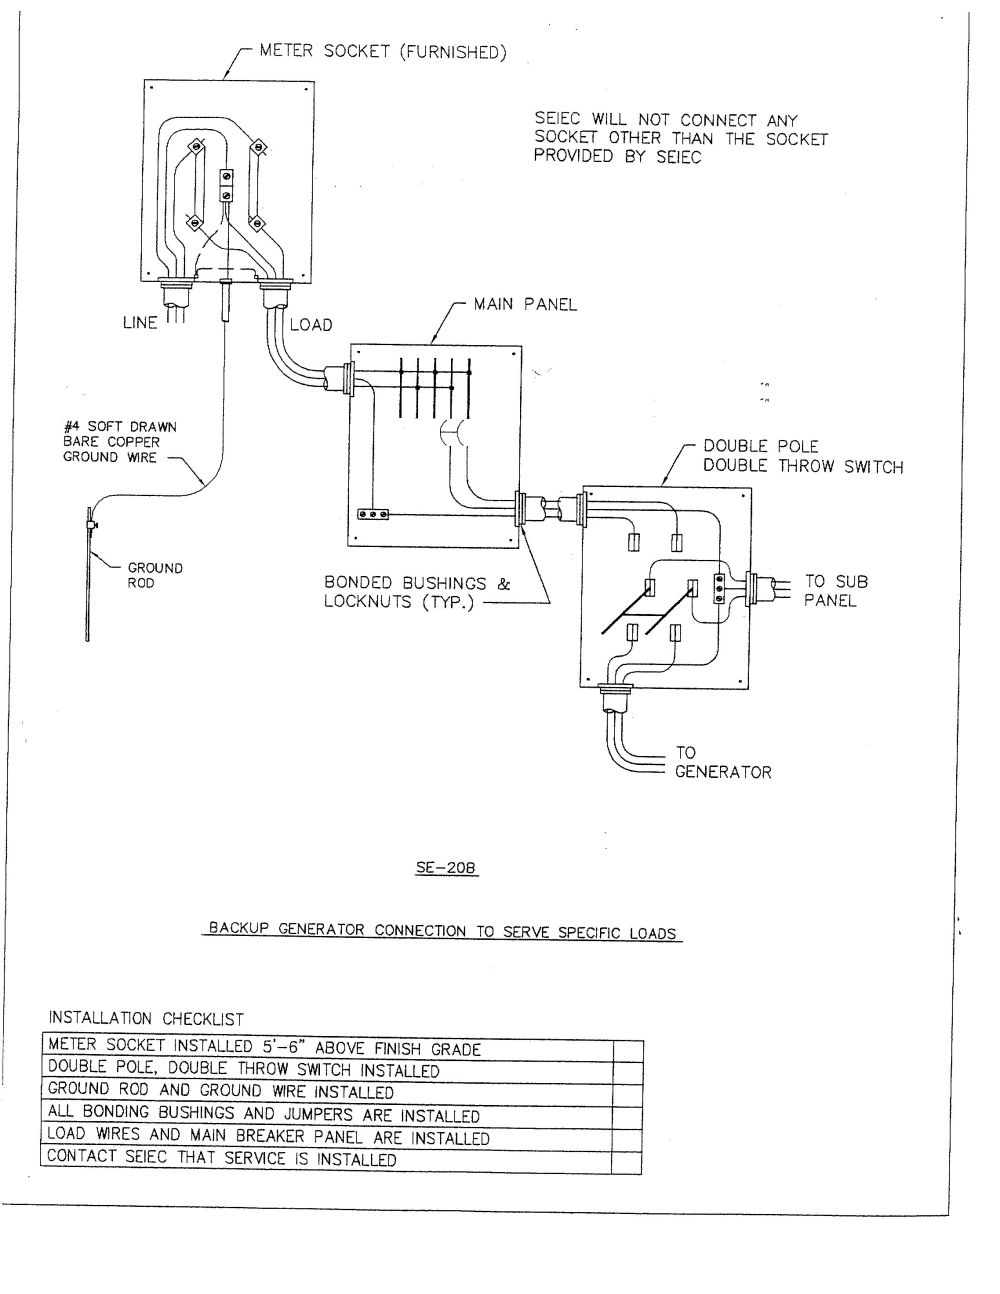 medium resolution of double throw breaker wiring diagram